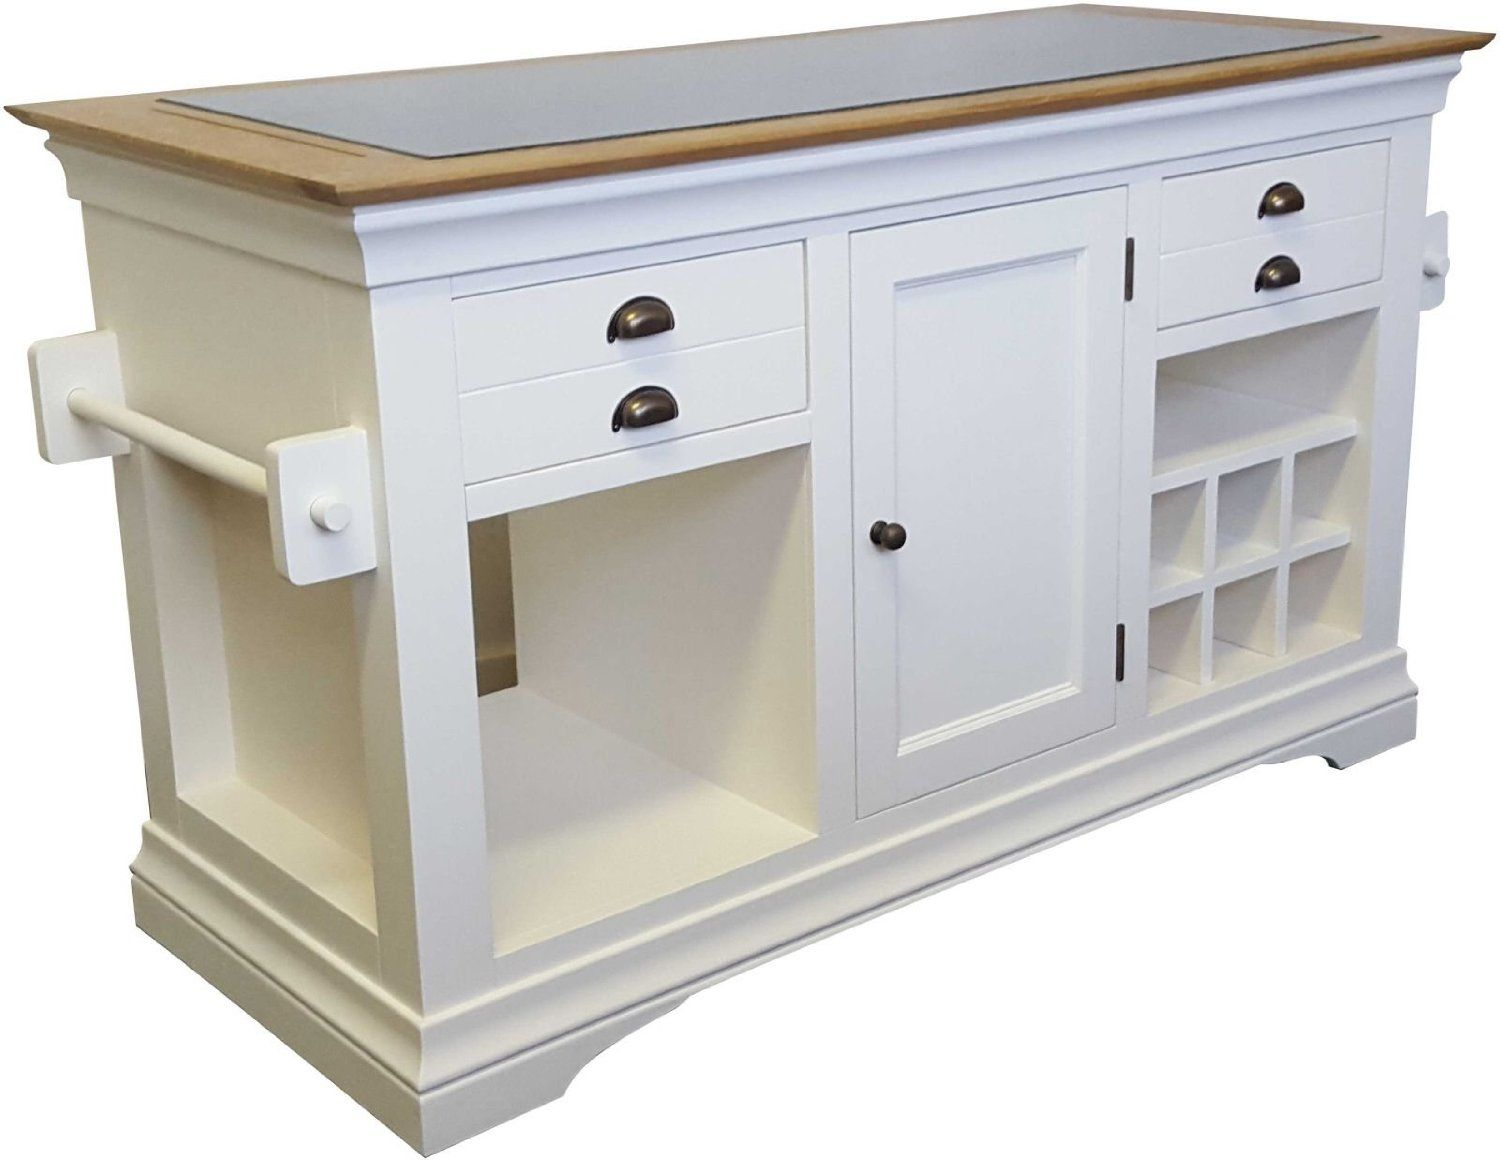 Granite Topped Kitchen Island Dijon Cream Painted Furniture Large Granite Top Kitchen Island